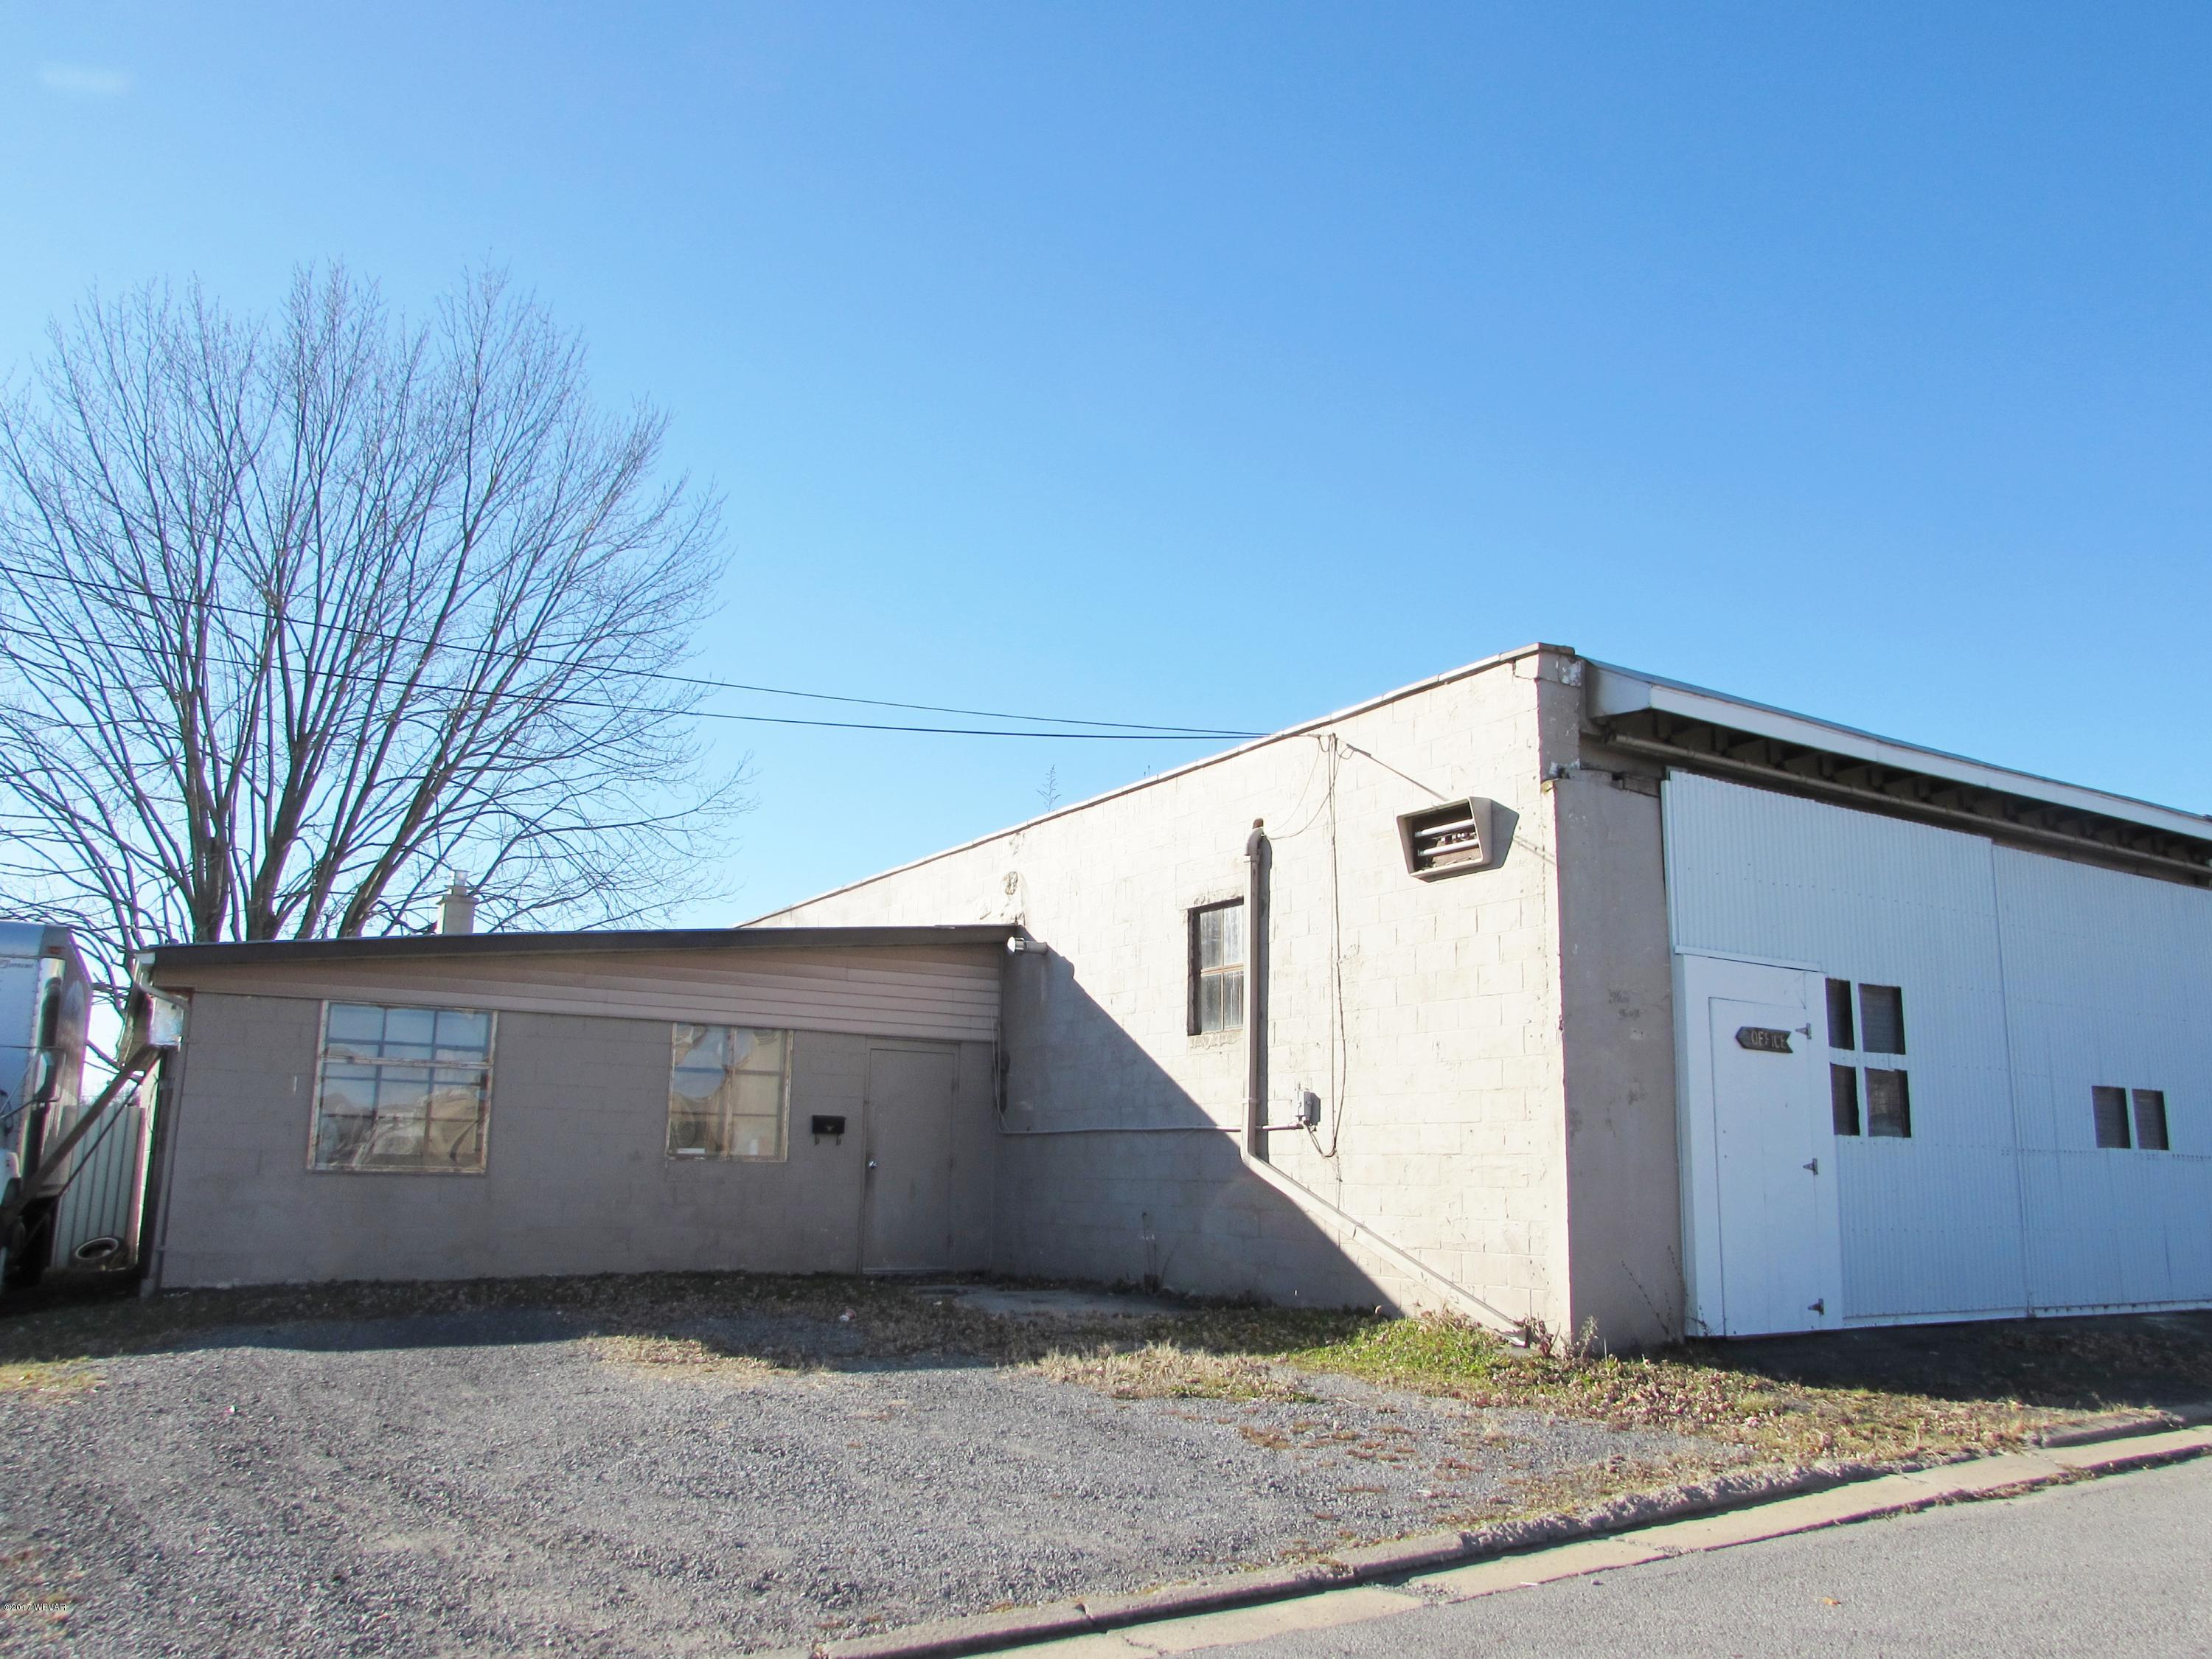 342 3RD AVENUE,Lock Haven,PA 17745,1 BathroomBathrooms,Commercial sales,3RD,WB-82670